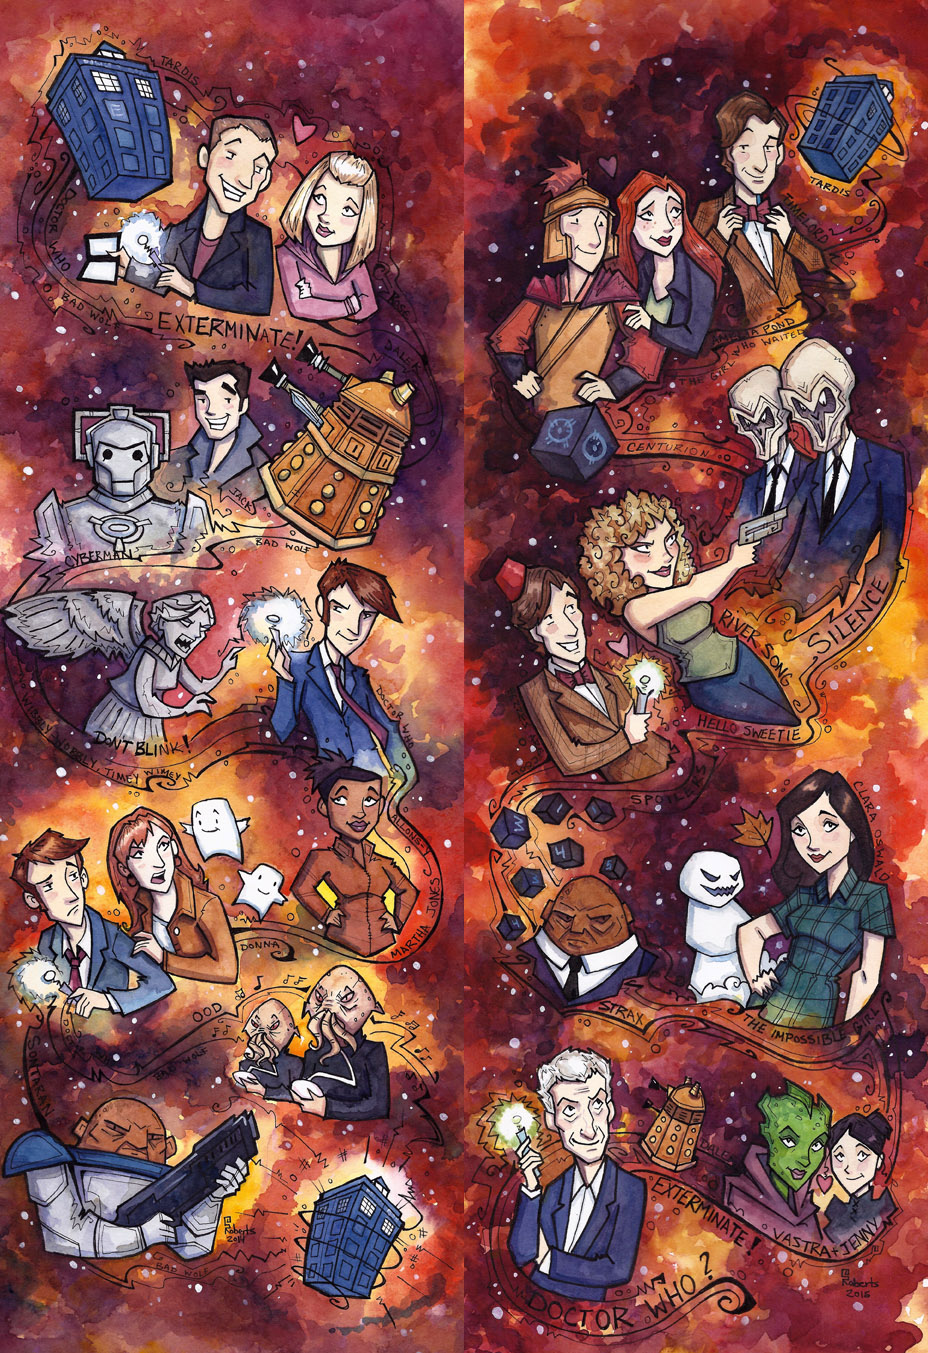 Doctor WHo, 9-12 (2 pieces - Fanart Watercolors) $150 each - email me for sizes oF each and details. (This is a cropped Image of the original)